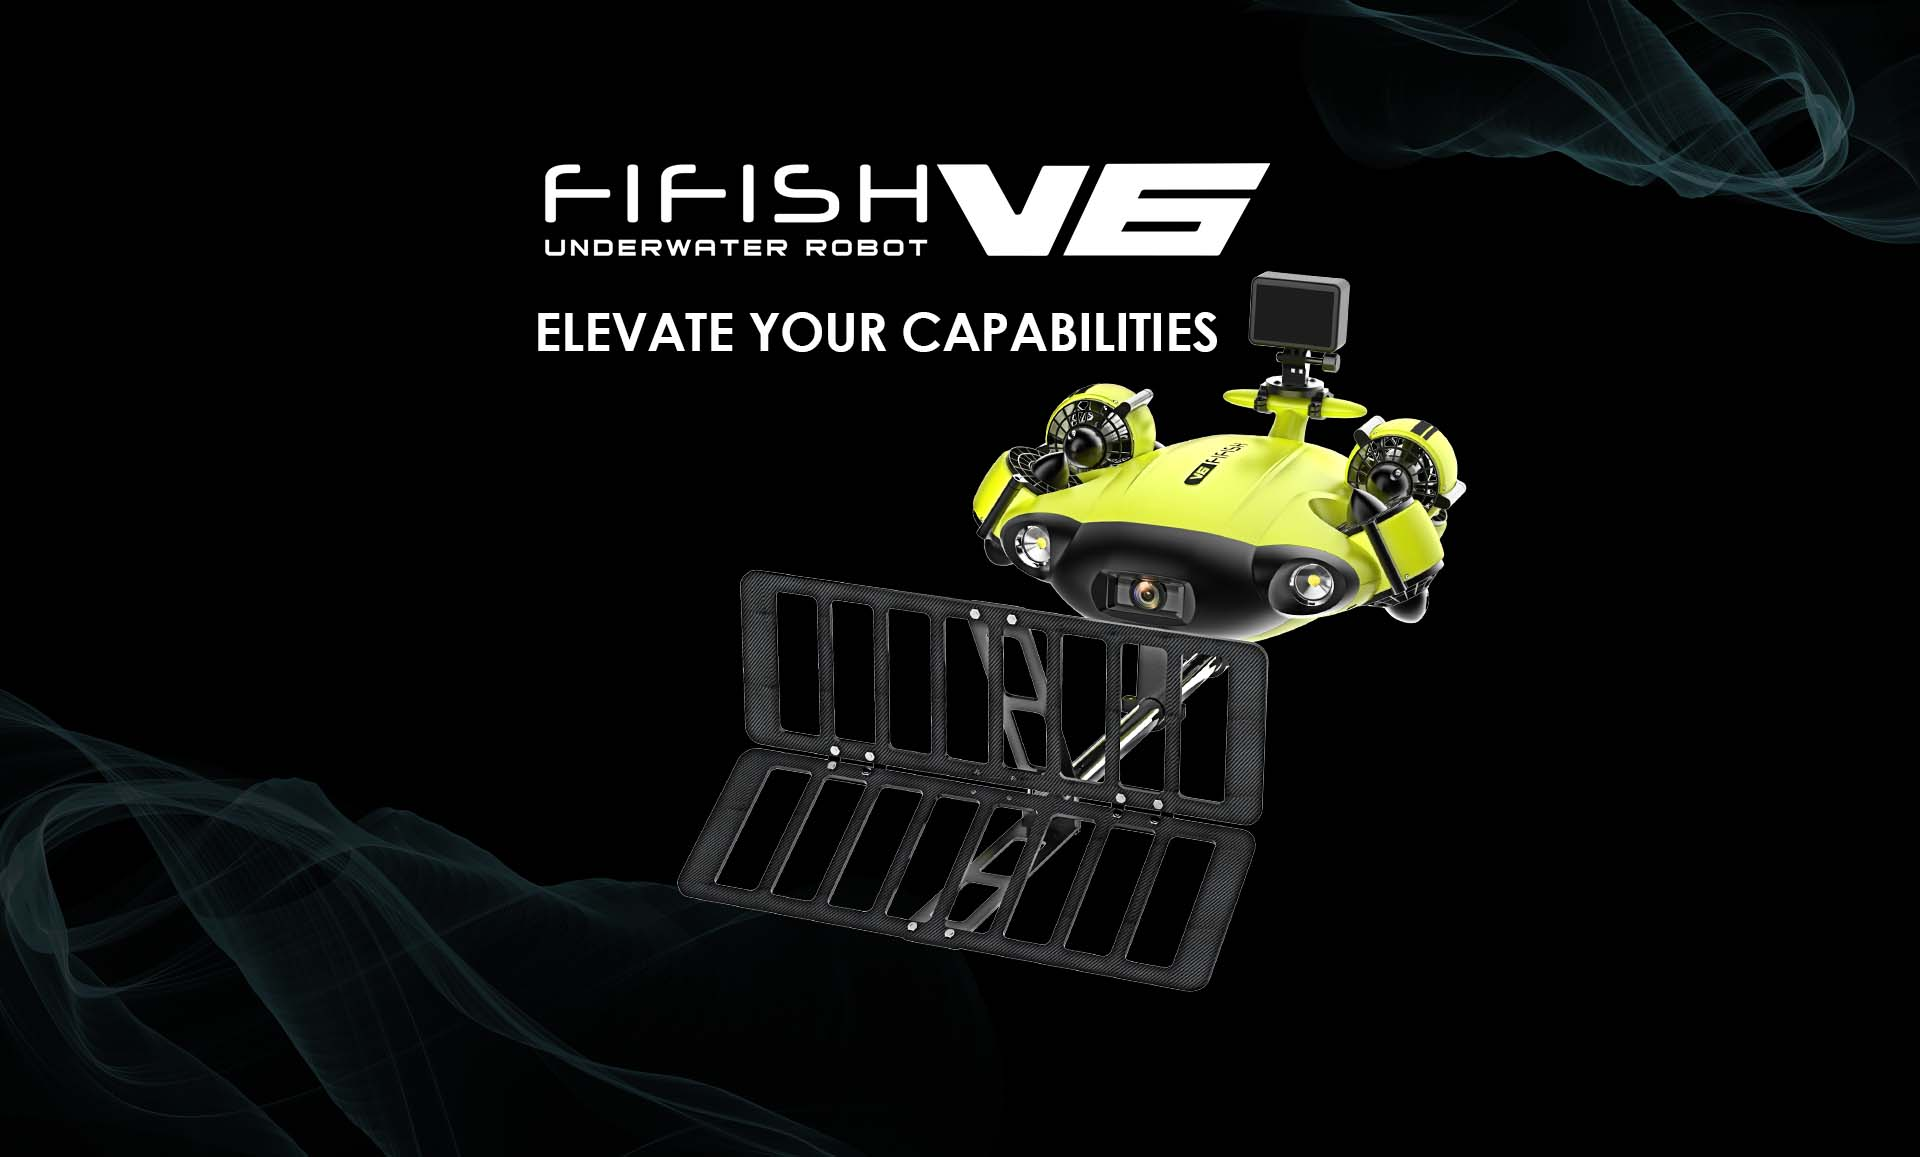 FIFISH V6 Attachment Tools